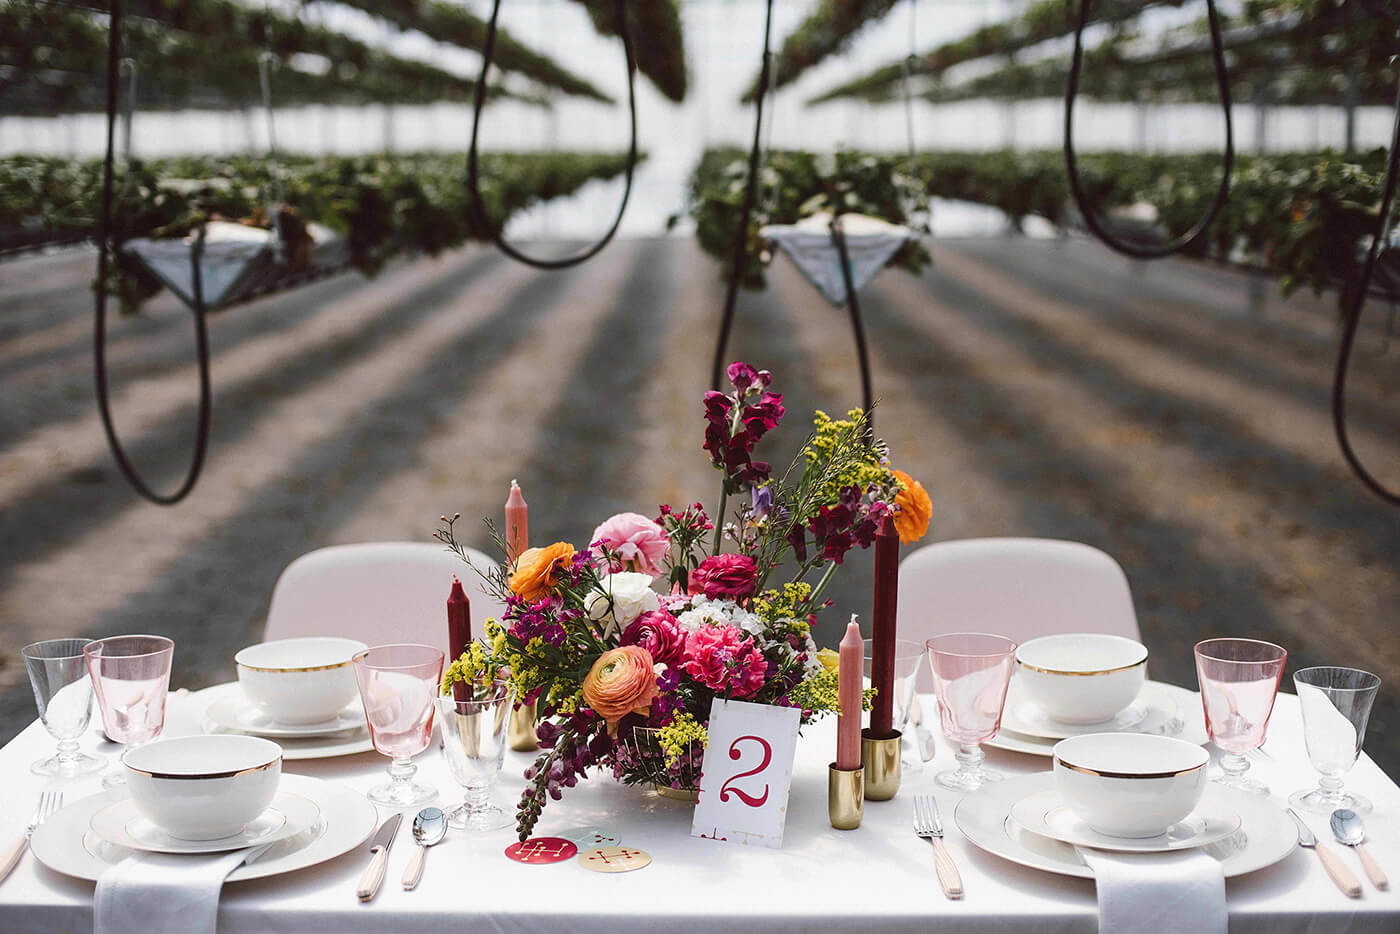 roma-organizacao-eventos-editorial-mid-century-modern-wedding-in-a-strawberry-field-04